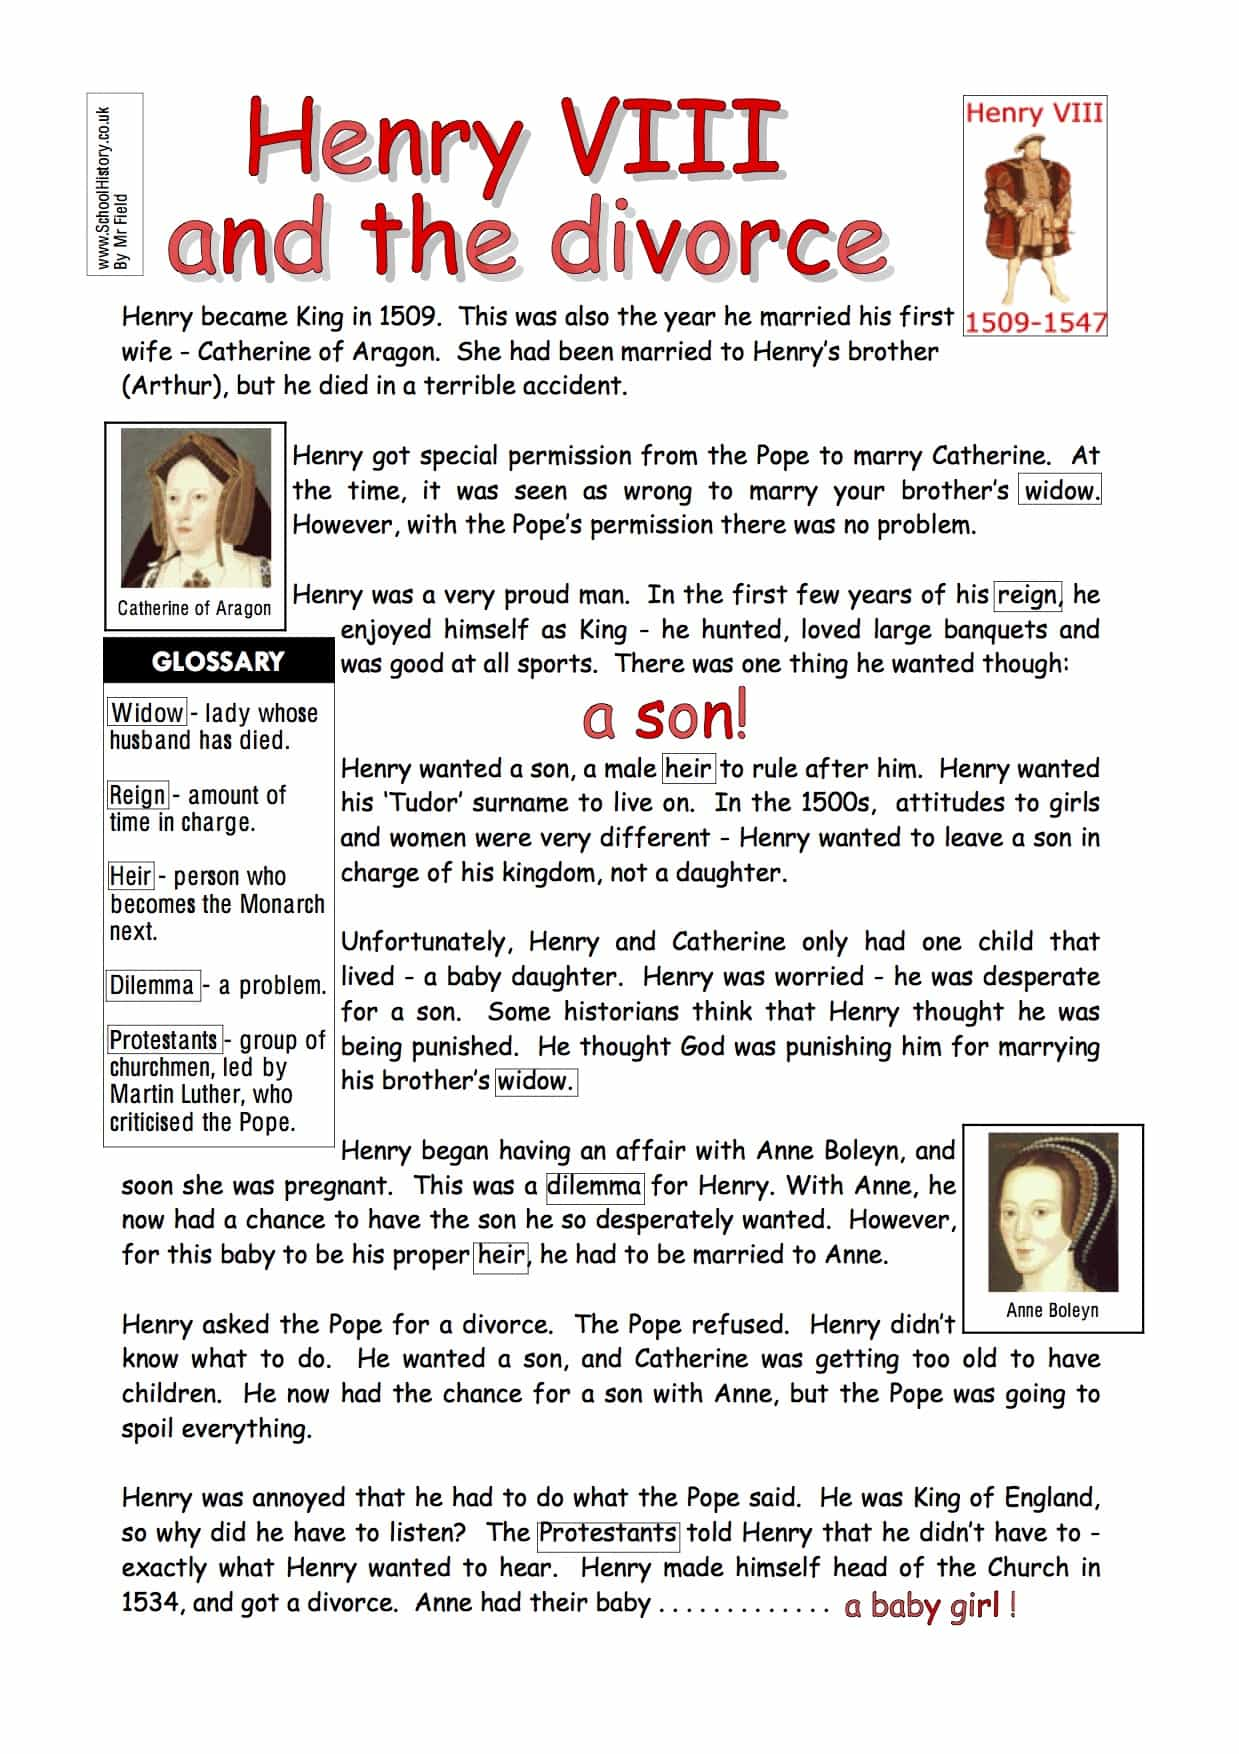 Modern Classroom Pdf ~ Henry viii and the divorce worksheet free pdf download